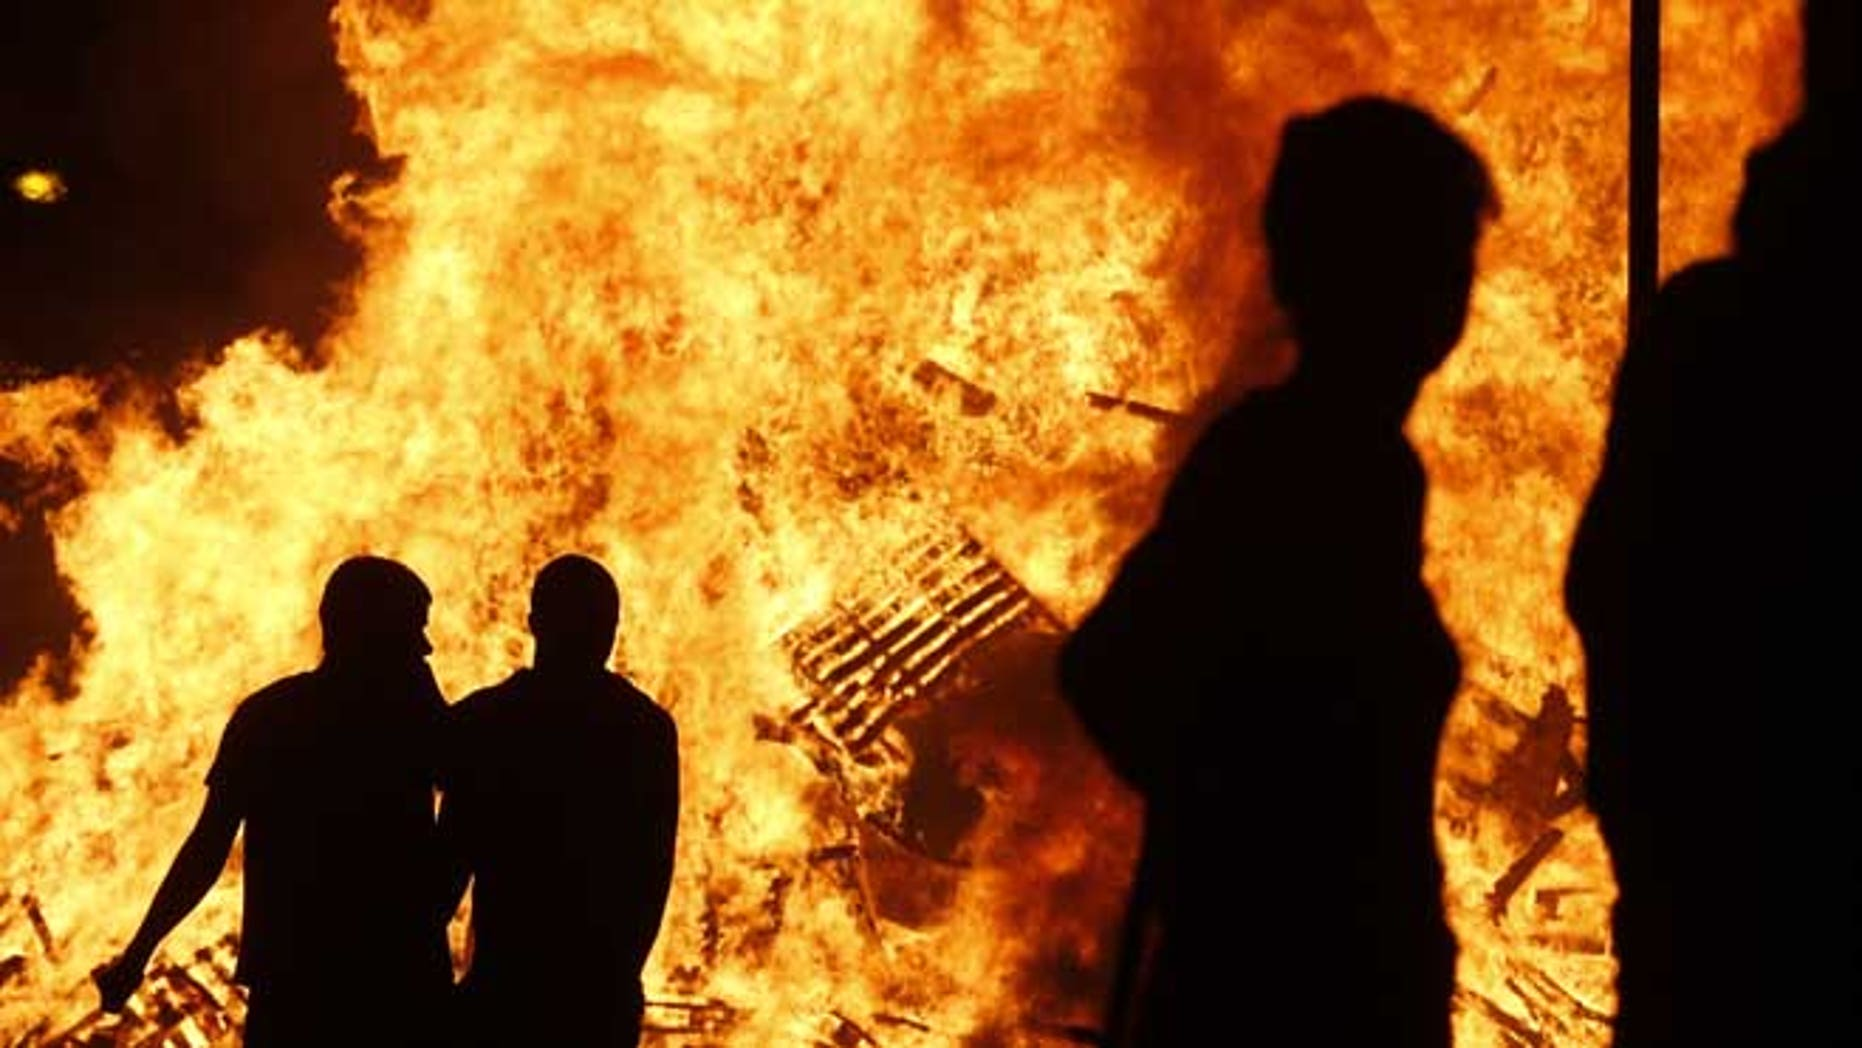 July 11, 2013: Loyalists watch a bonfire in the Sandy Row area of Belfast, Northern Ireland. Hundreds of fires were set alight Thursday as loyalists celebrate the July 12, remembering the defeat of the Catholic King James, by the Protestant William of Orange in 1690.